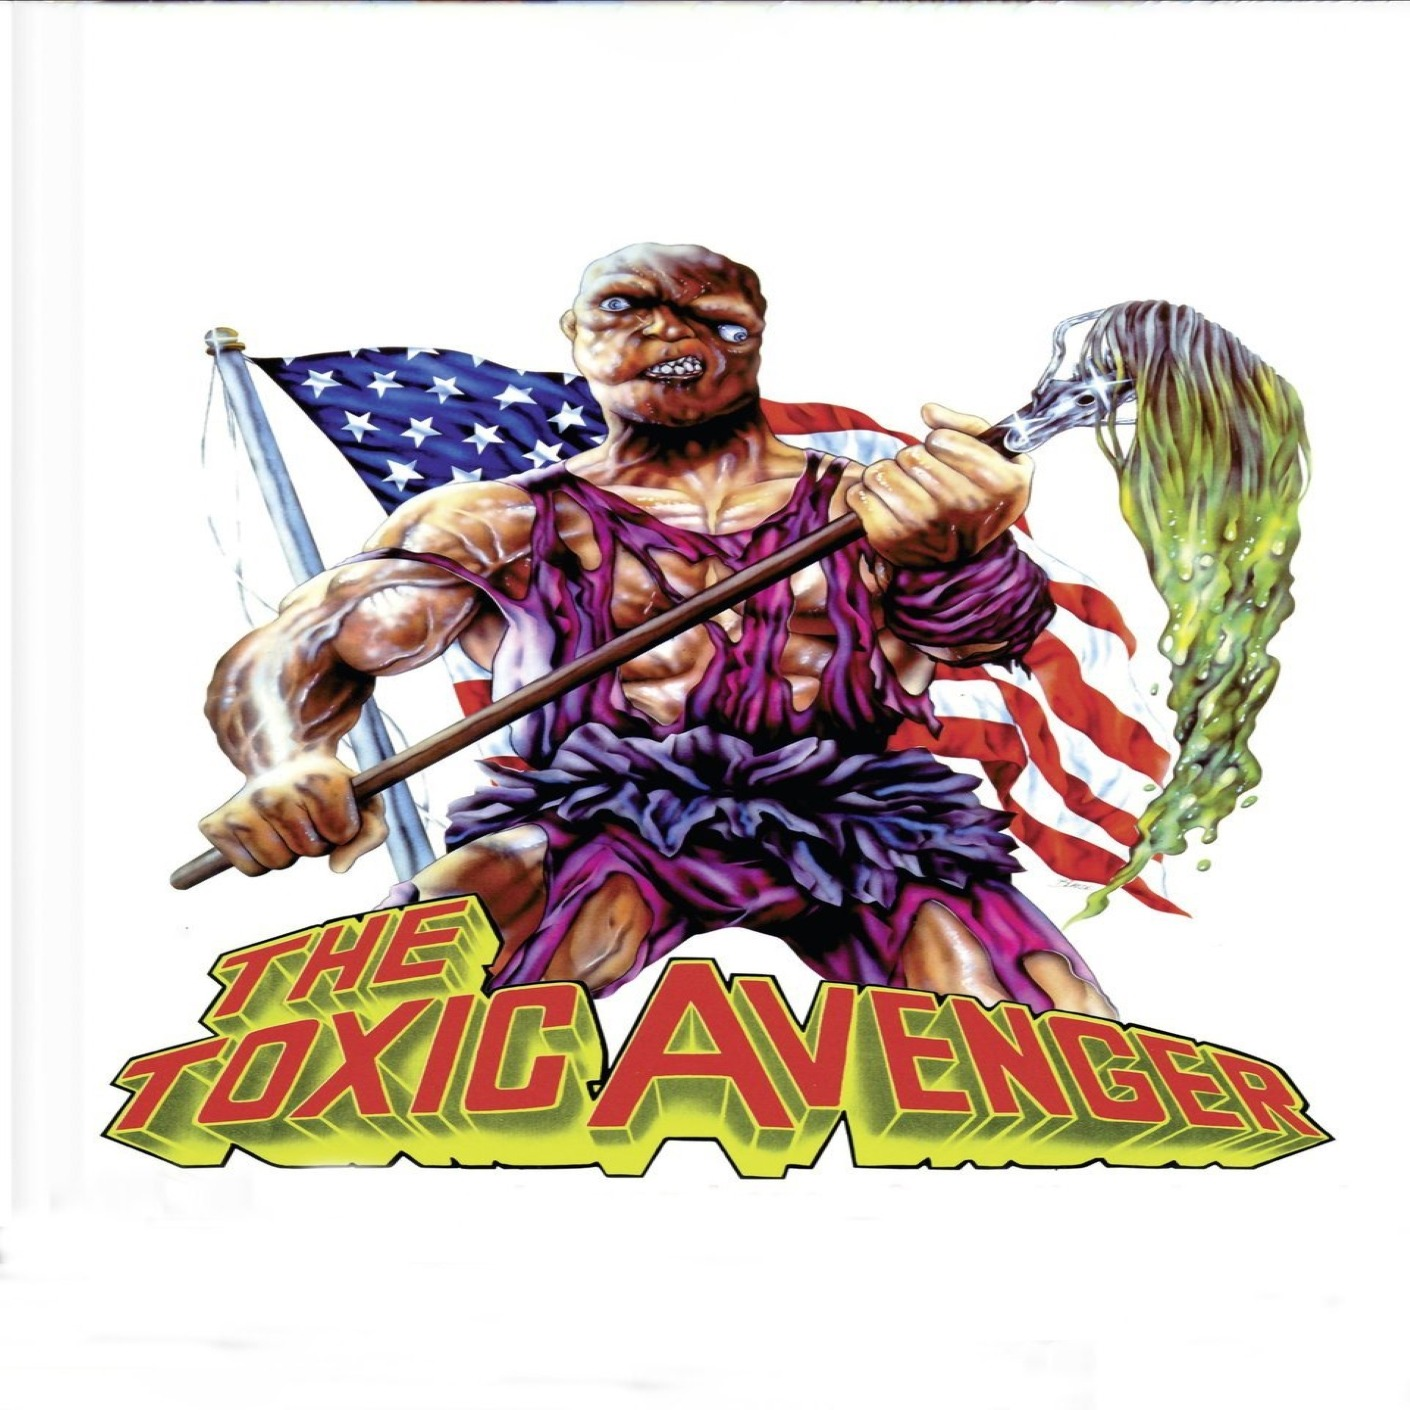 GVN Presents: They Called This a Movie - The Toxic Avenger (1984)